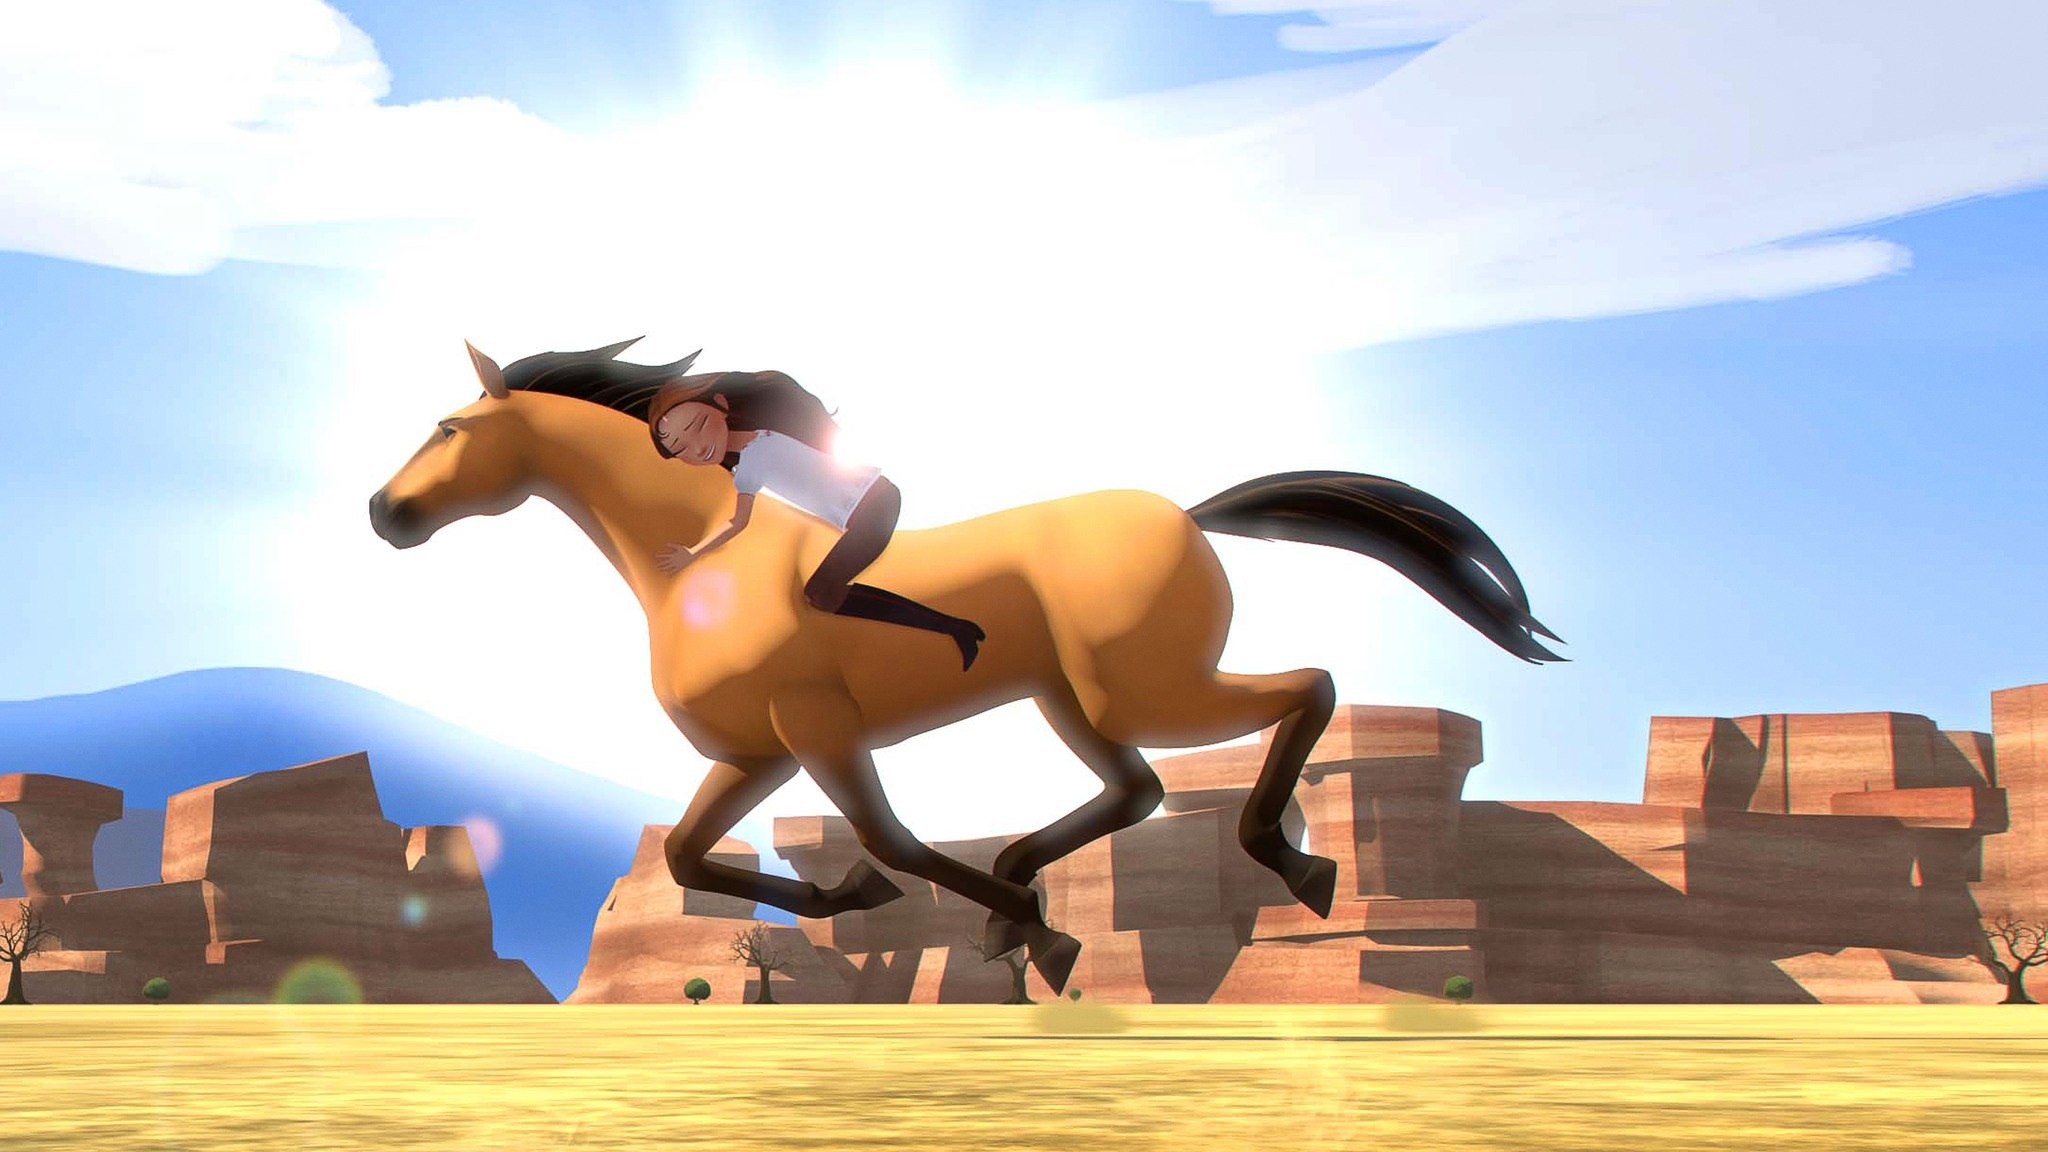 First Look Dreamworks Animation S Spirit Riding Free Headed To